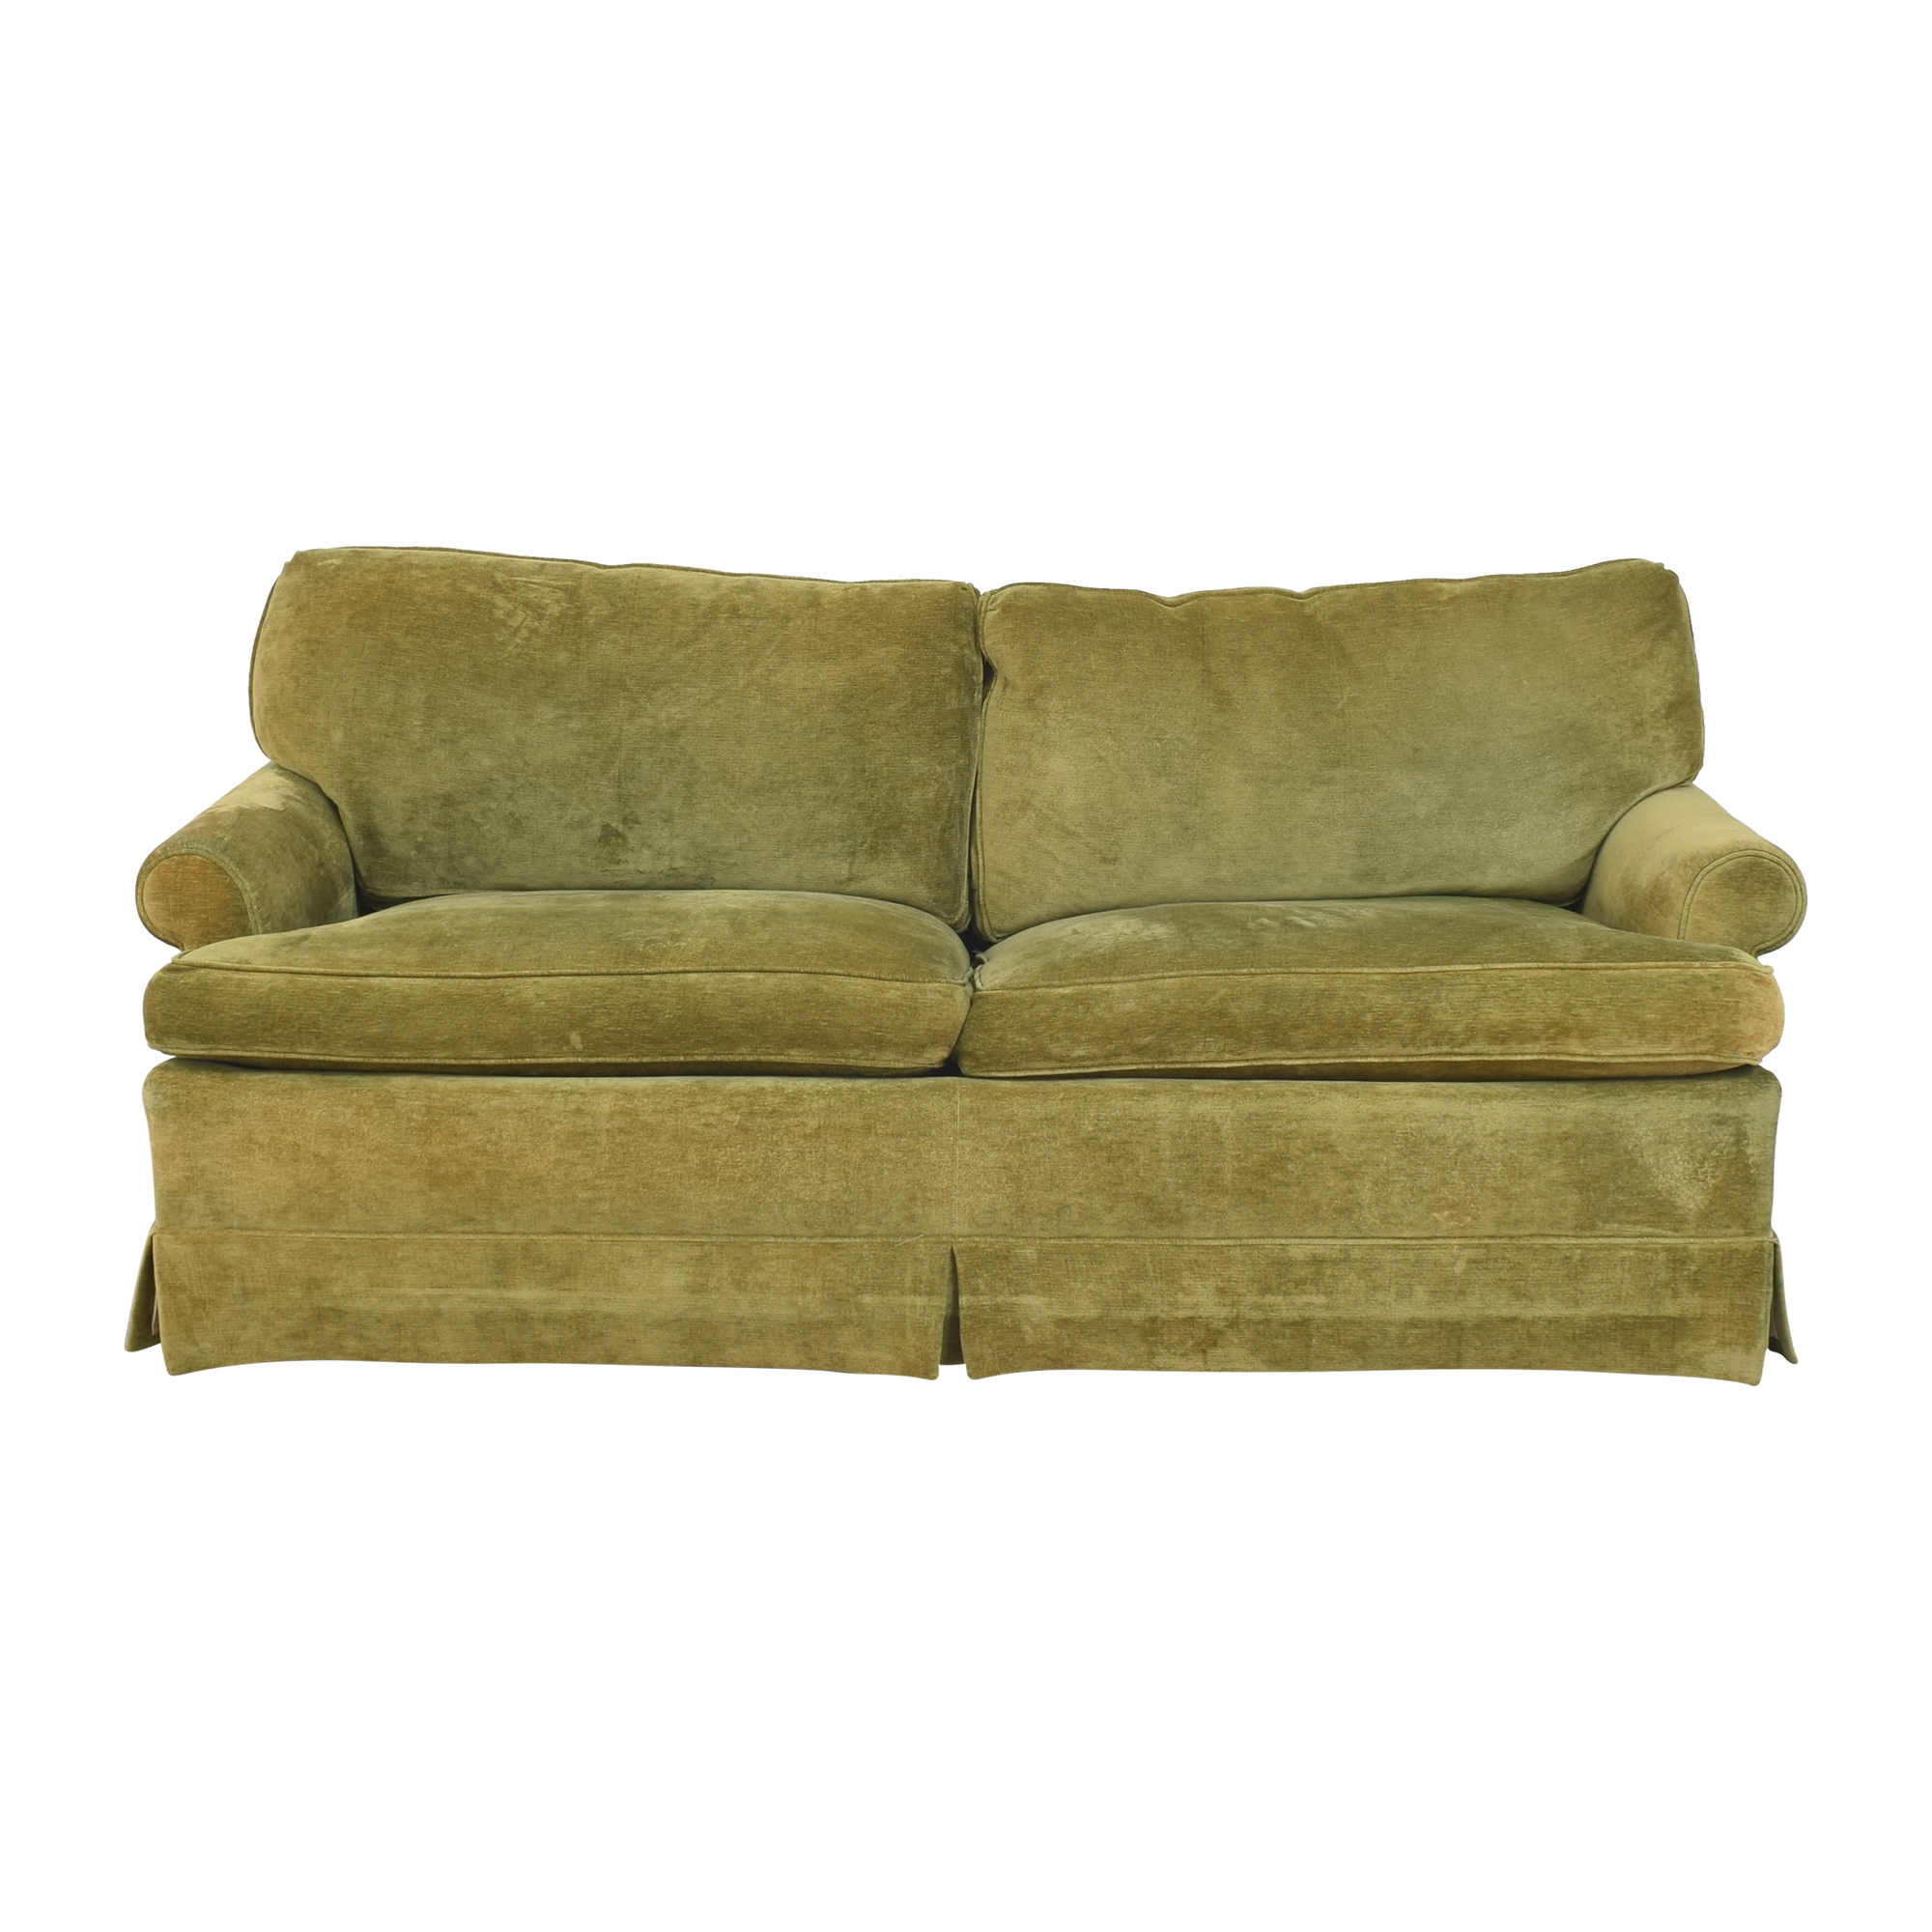 Hickory Springs Hickory Springs Two Cushion Sleeper Sofa